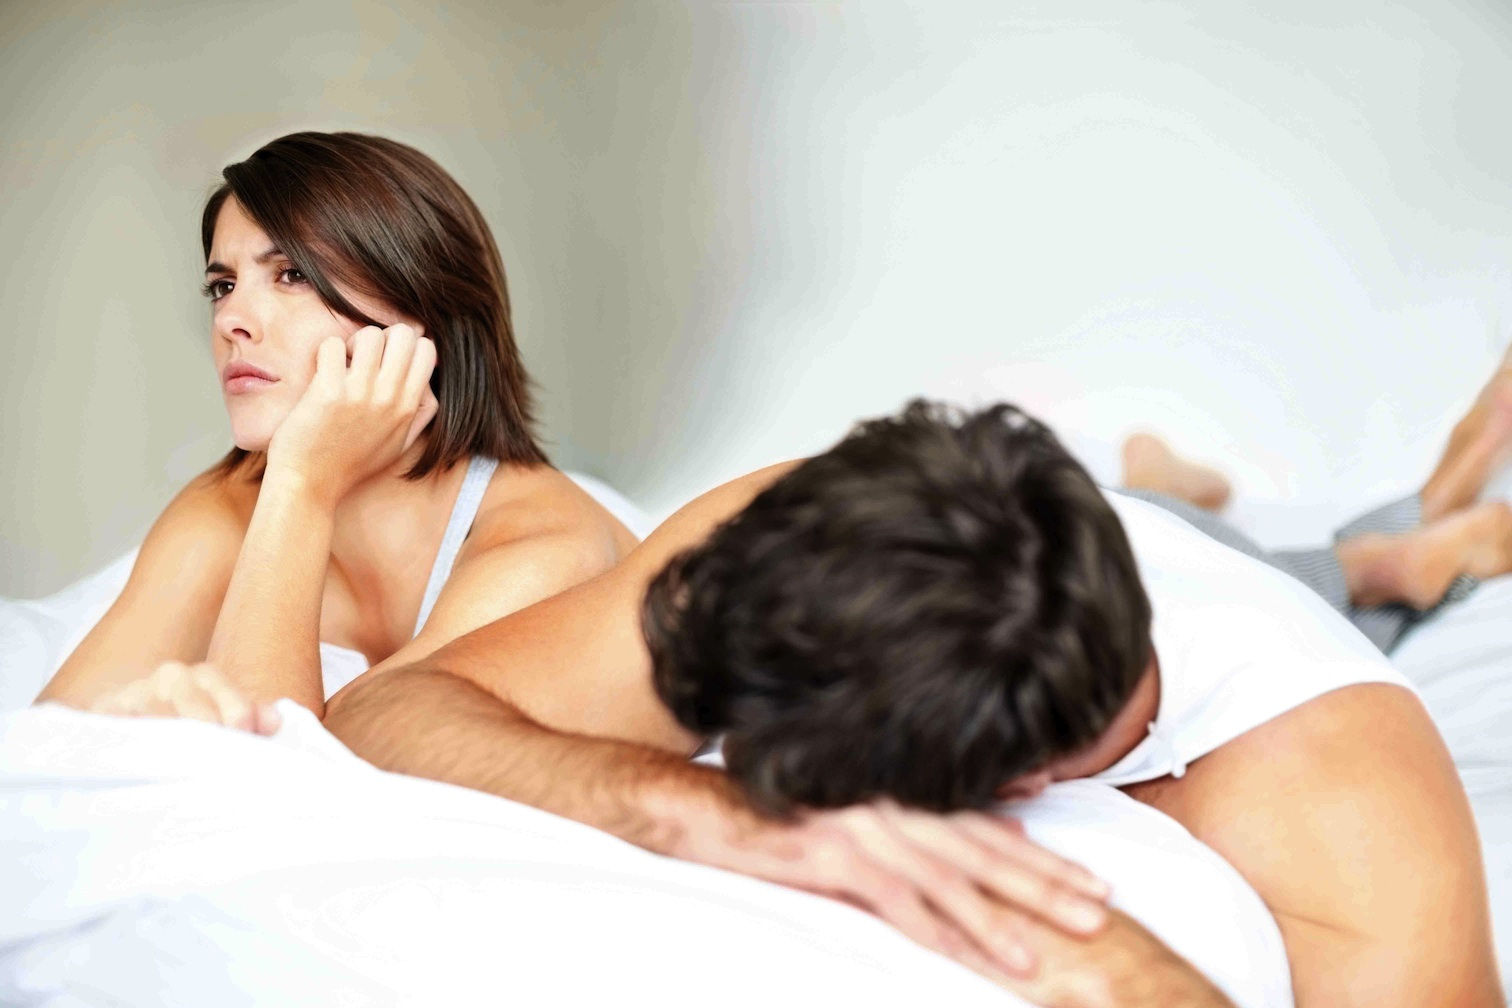 5 Signs That Your Relationship is Moving Towards a Breakup